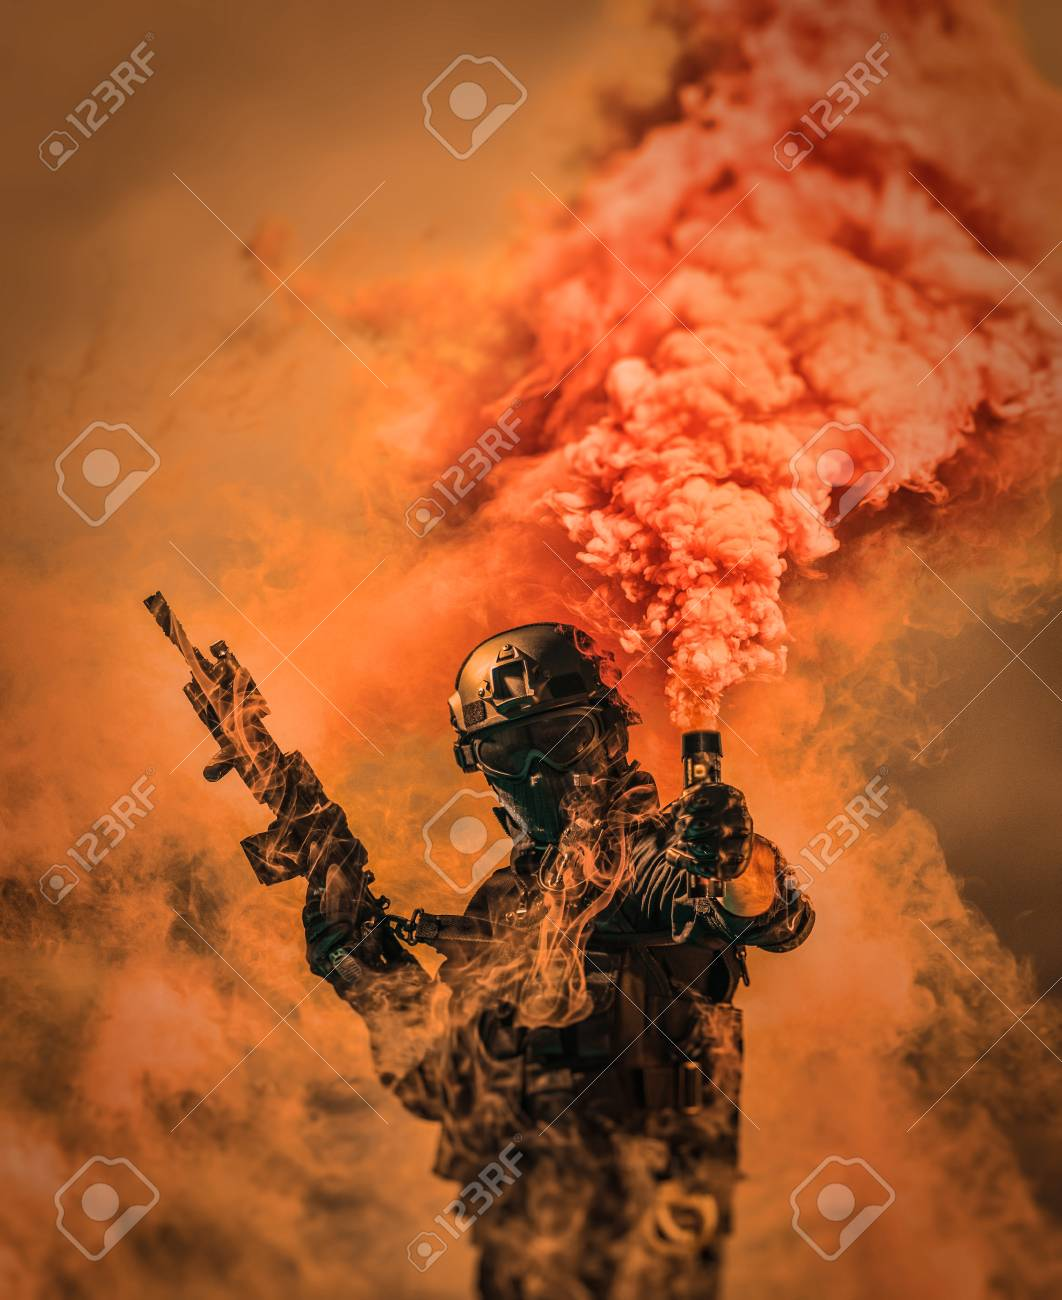 special forces soldier police, swat team member using smoke bomb